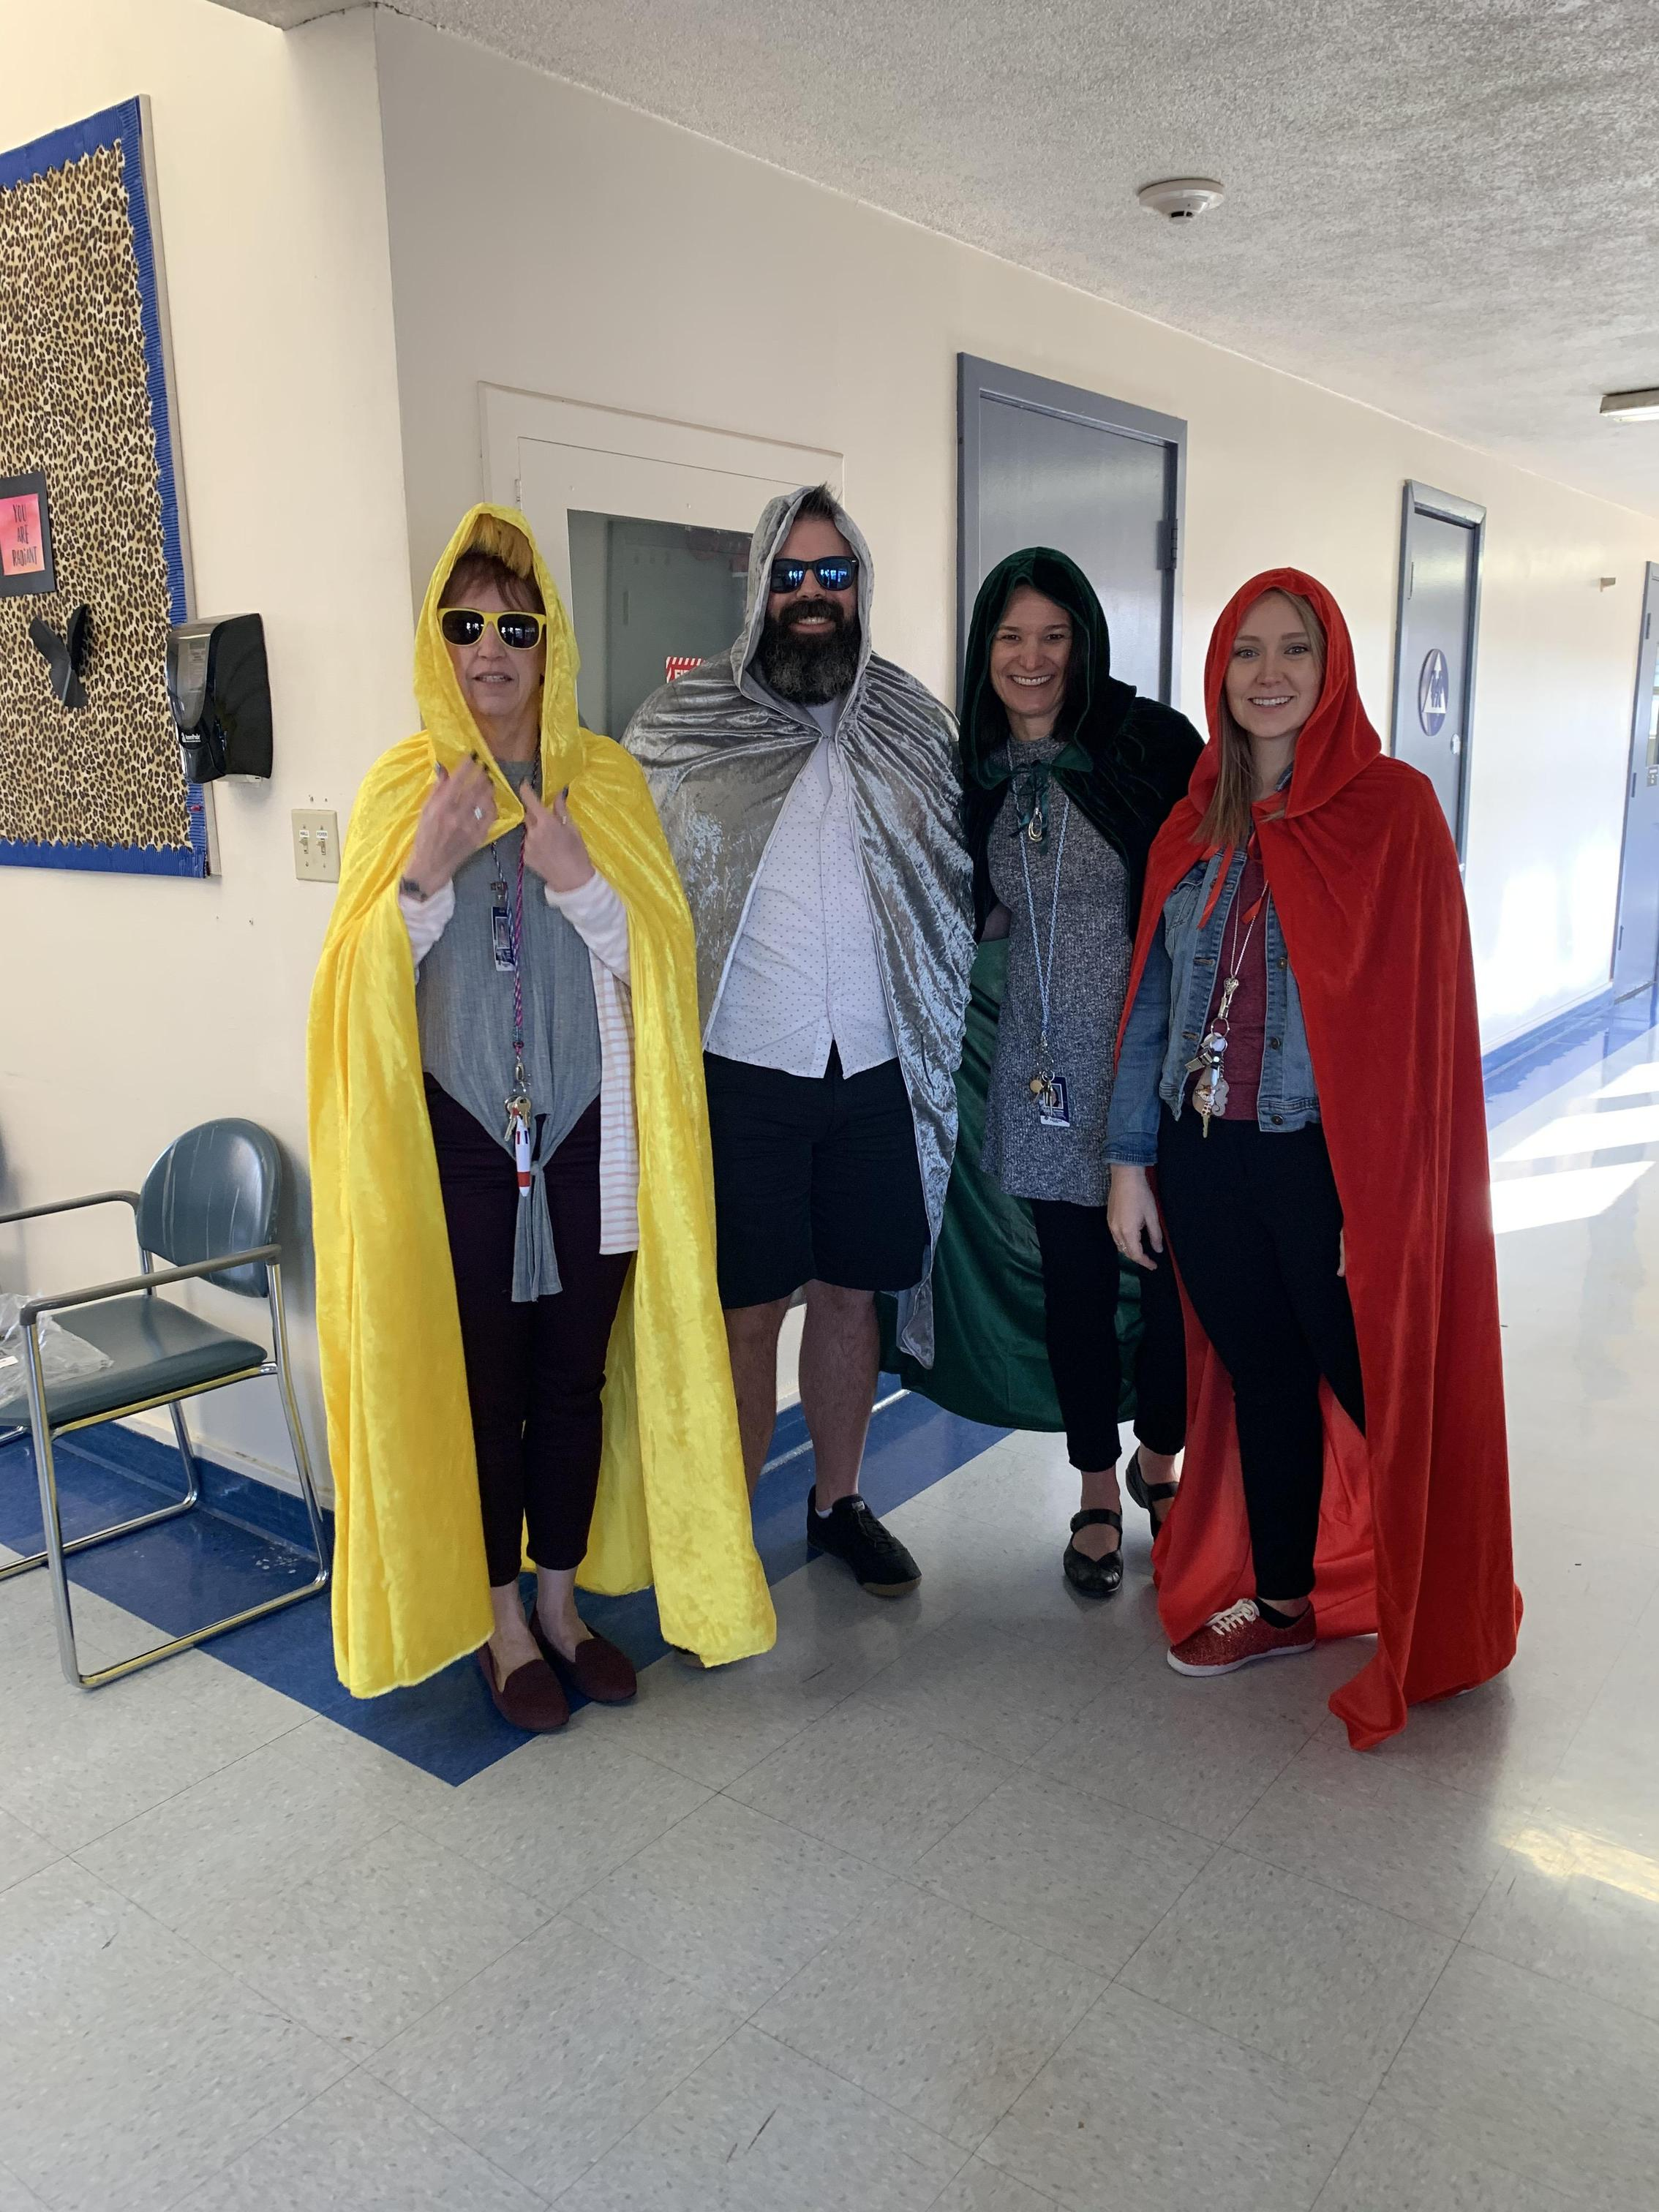 Pacheco Students Dress-up Day